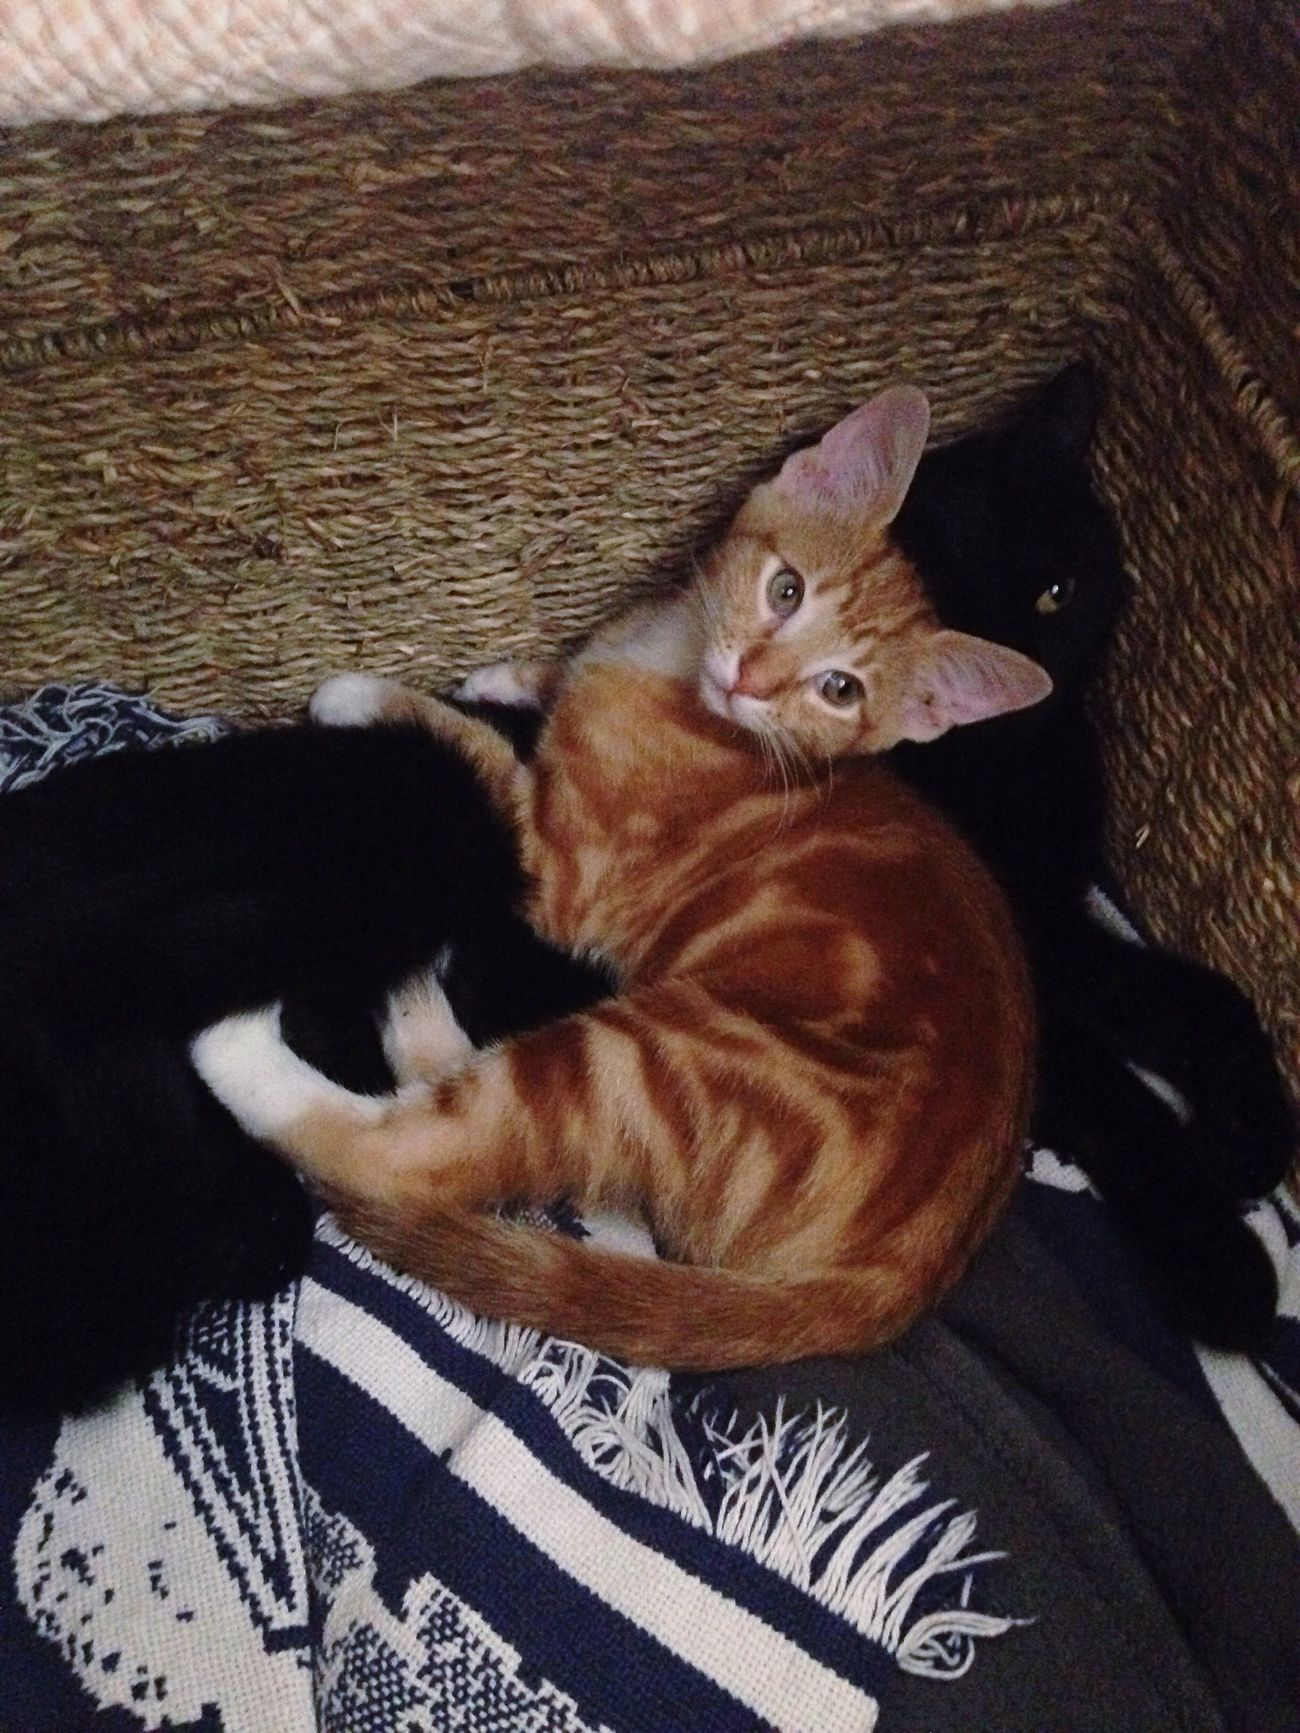 Always Be Cozy Cats Cuddle Orange And Black I love this picture so much because these two cats always fight, yet today, my birthday, the orange one went over to the black one and layed on her. It was an amazing moment, and it made me feel warm and cozy inside.